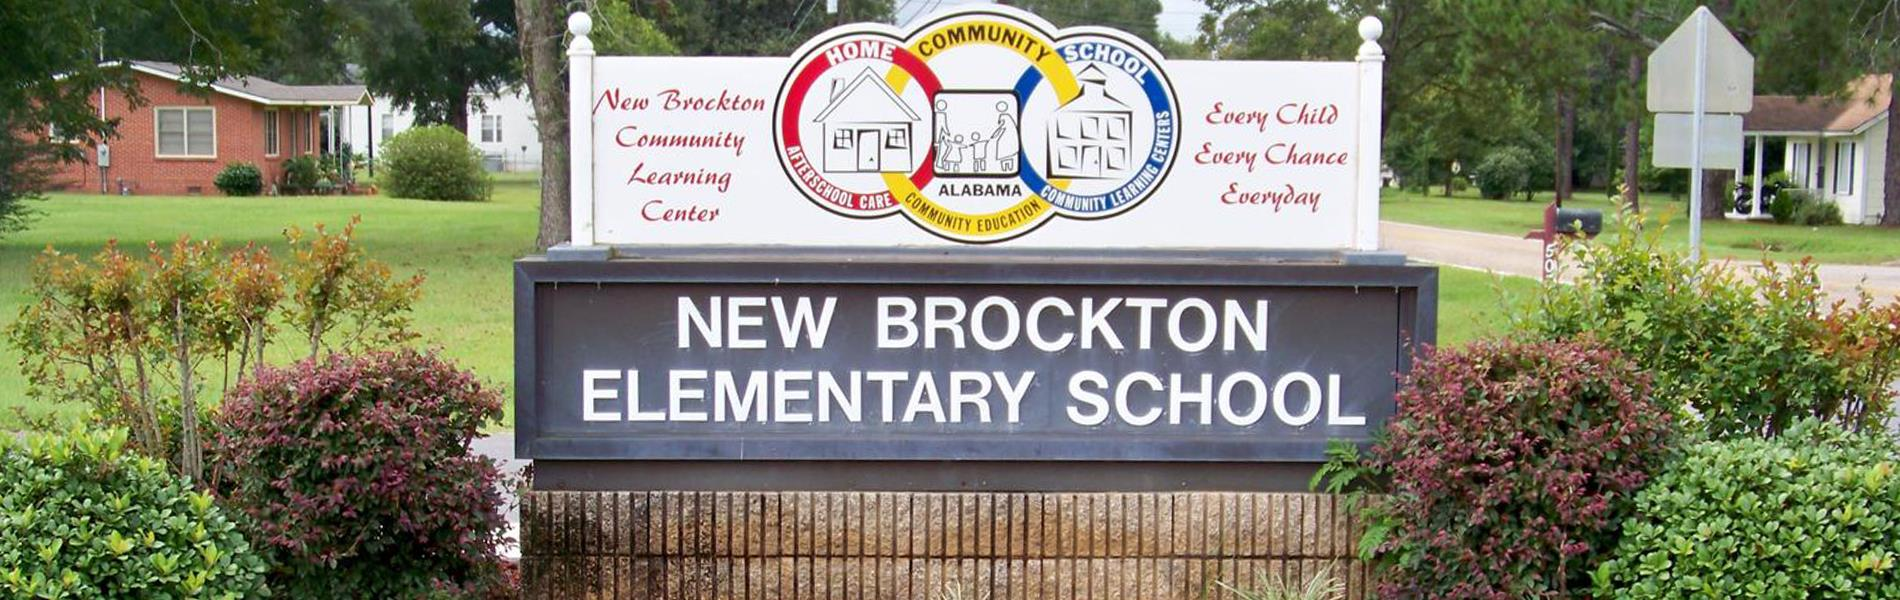 new brockton elementary